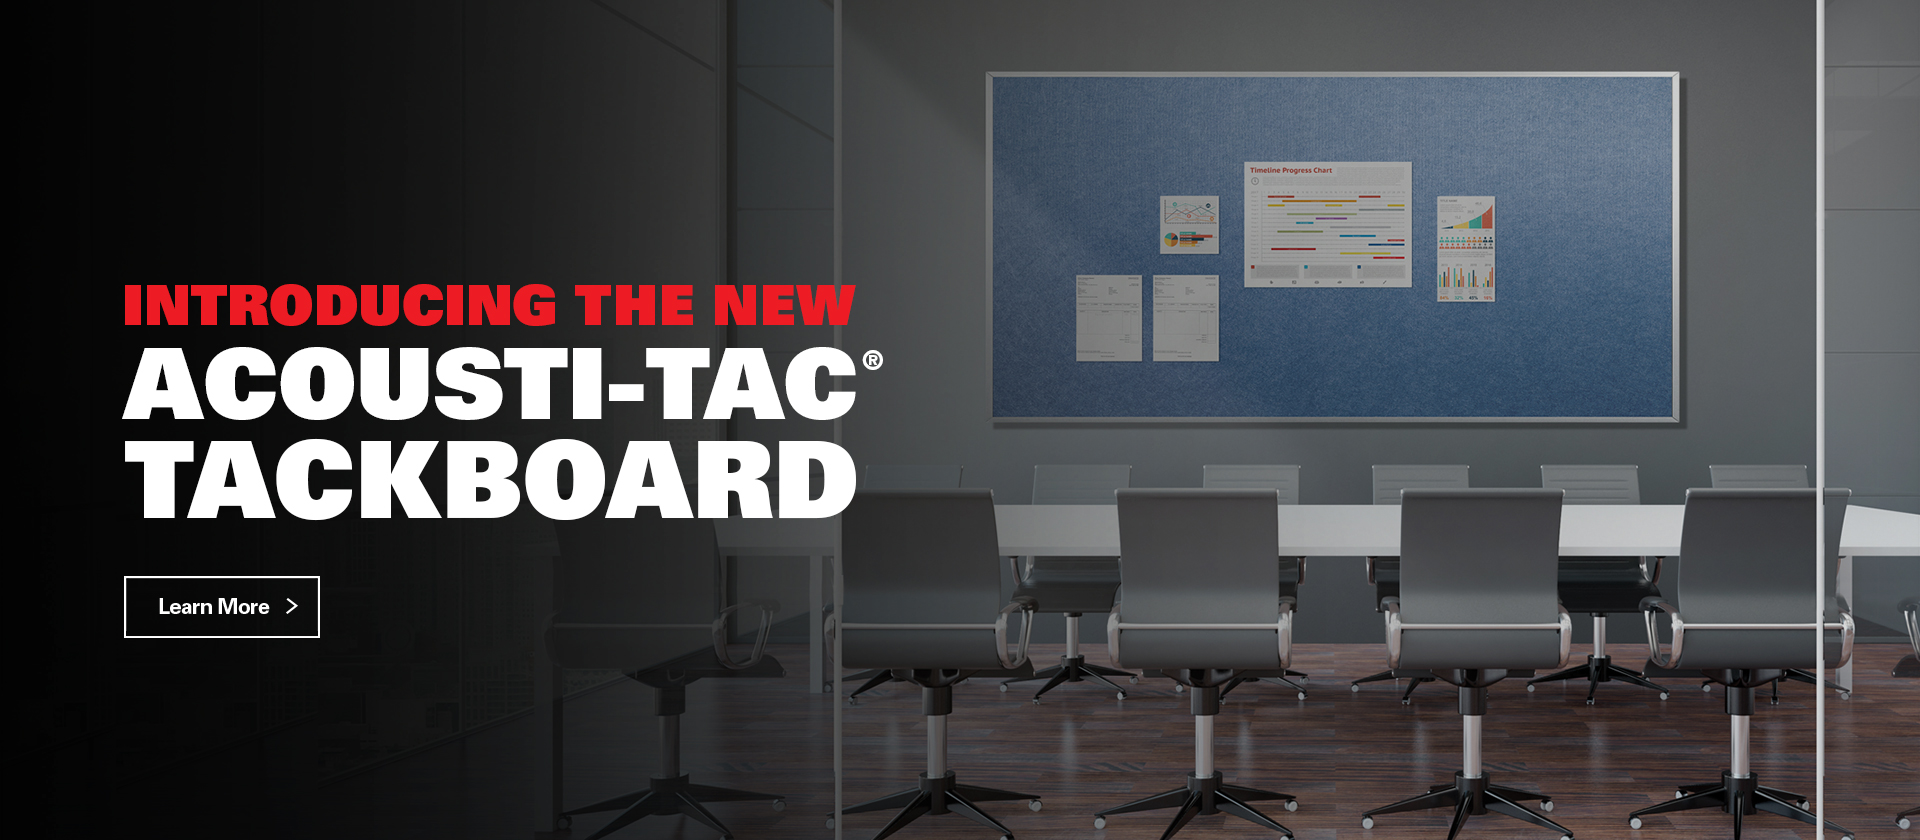 Introducing the new accousti-tac tackboard